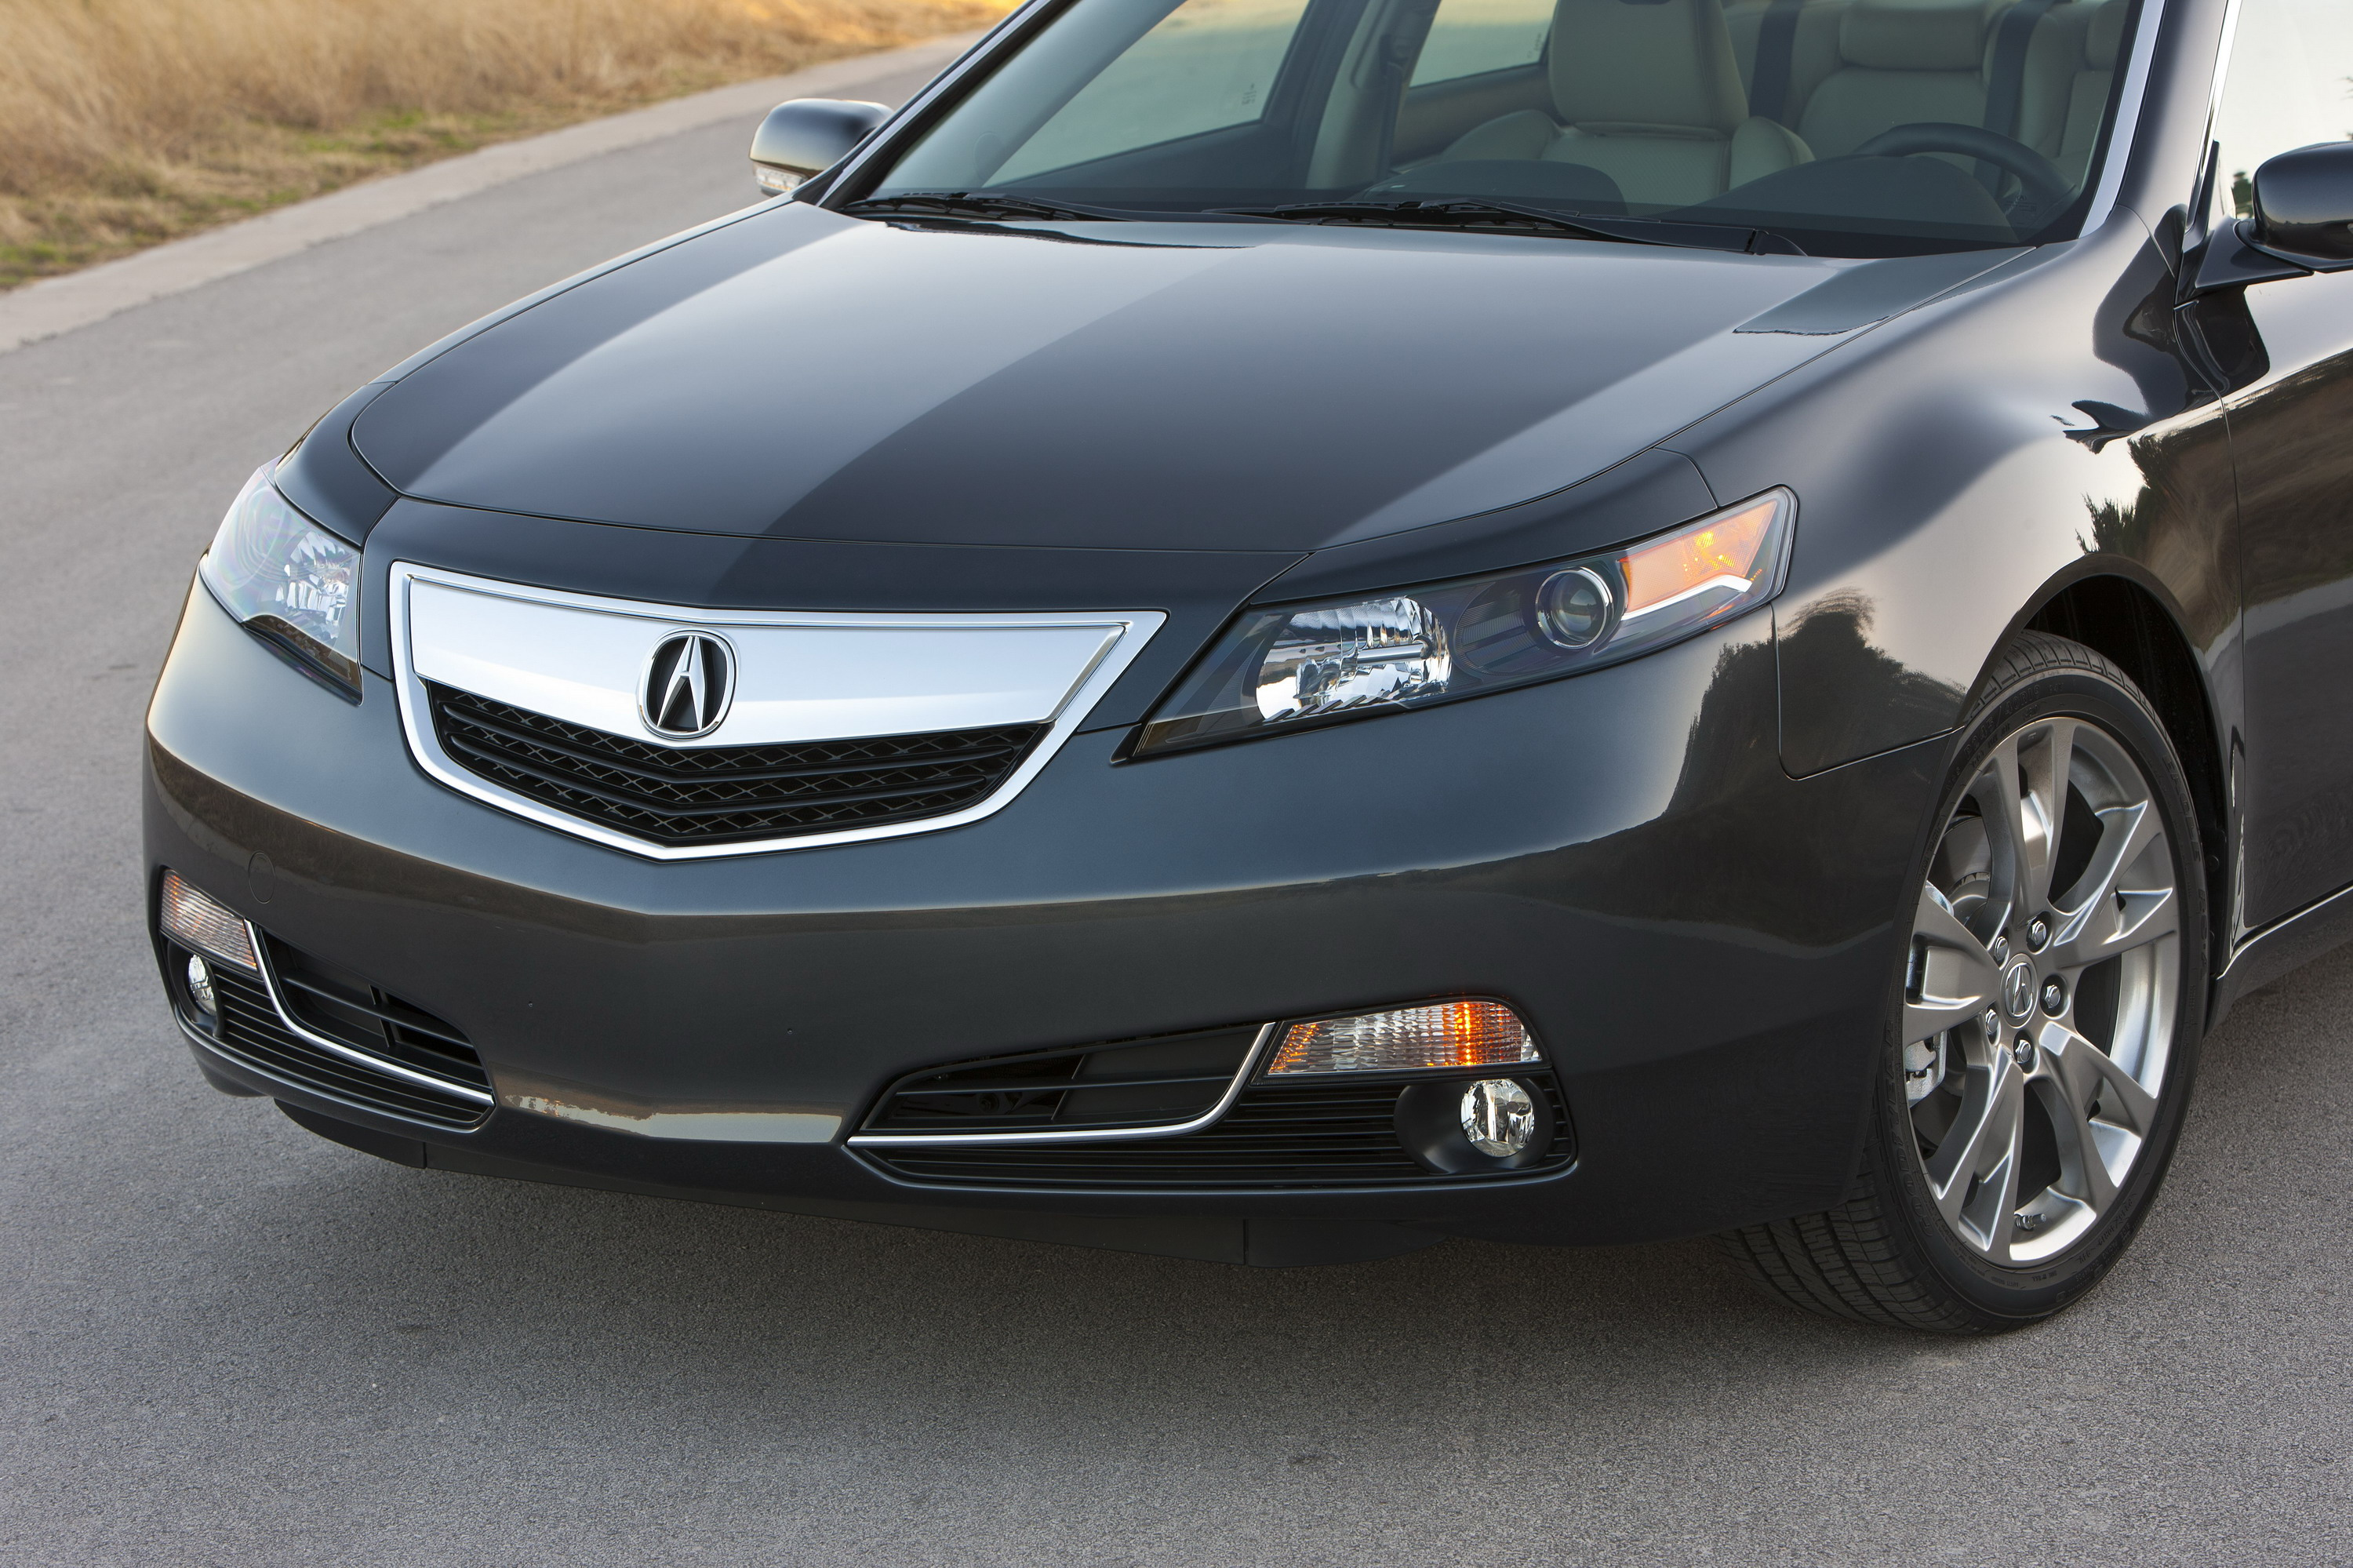 acura headlight one took hid out in strip clear so breaking second i other forums was but ring it diy wound third generation painted black of headlights up gonna and tl on acurazine opened the leave paint chorme